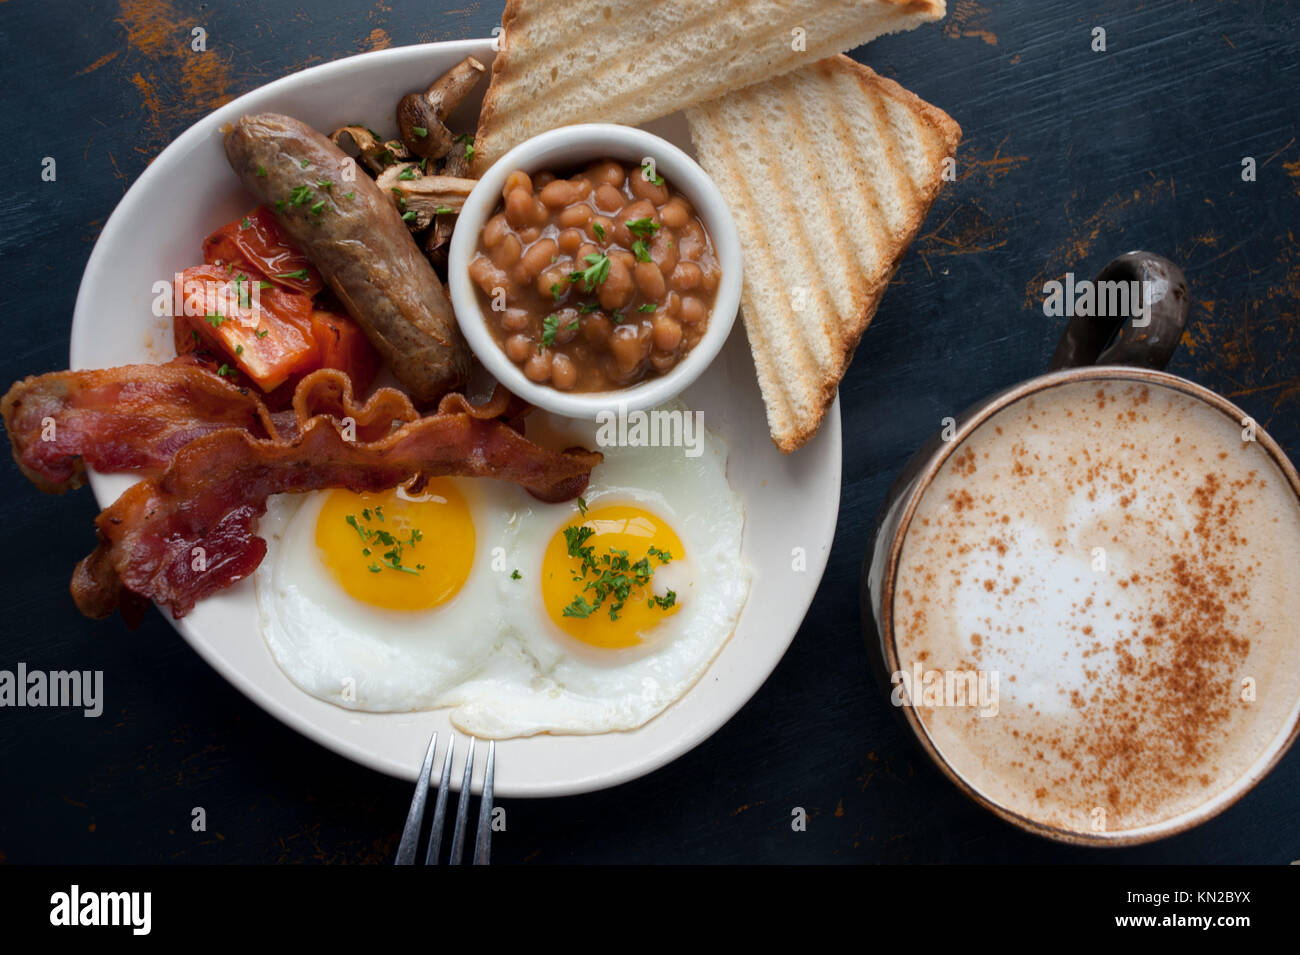 Food A classic Full English Breakfast of eggs bacon sausage or bangers beans mushrooms tomatoes and toast with coffee - Stock Image